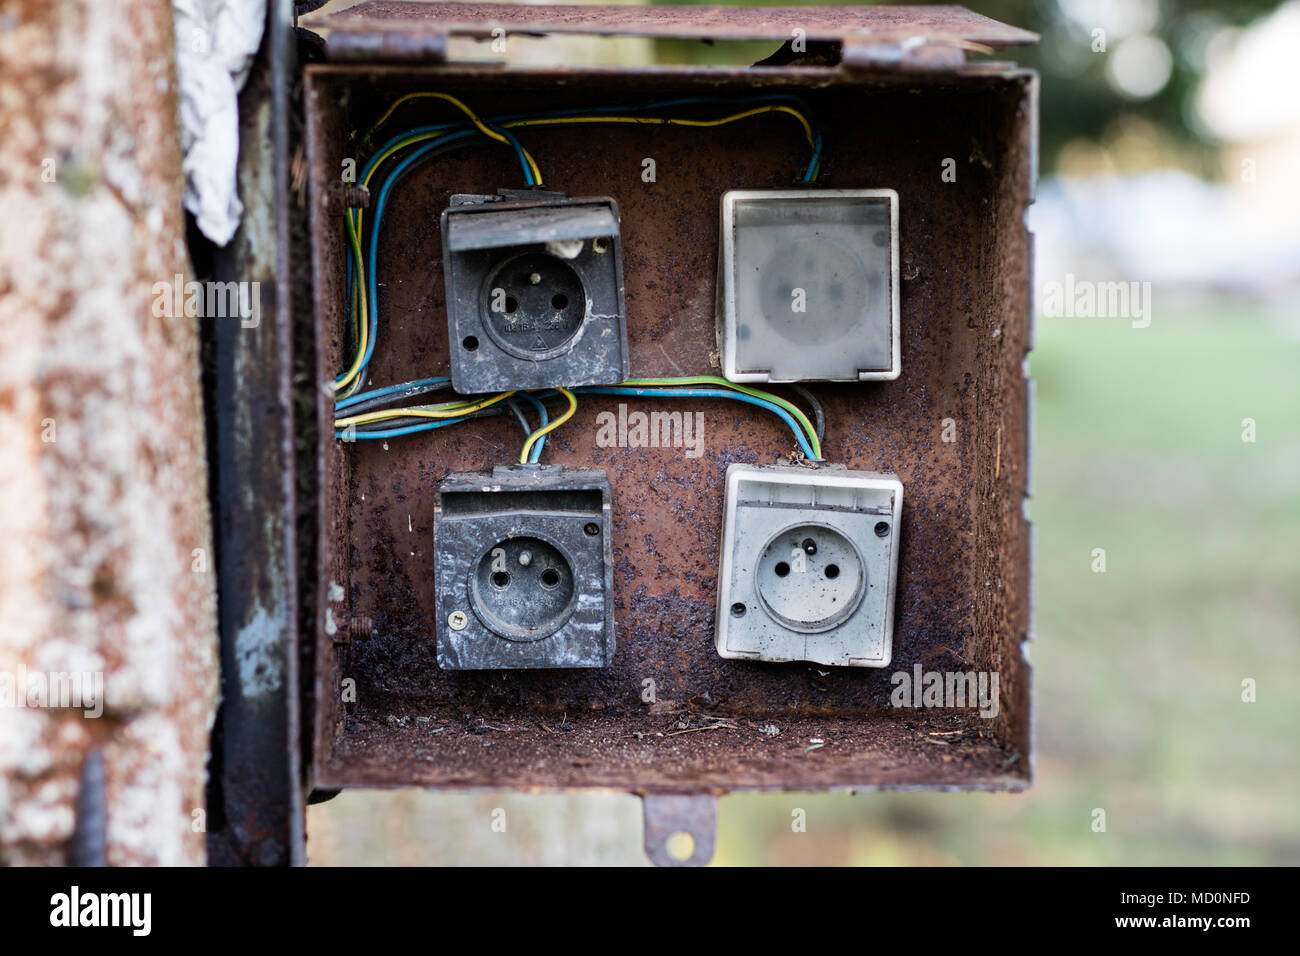 Old Fuses Fuse Box Stock Photos Images Glass And Electrical Used For Installations Space Wires Electric Season Of